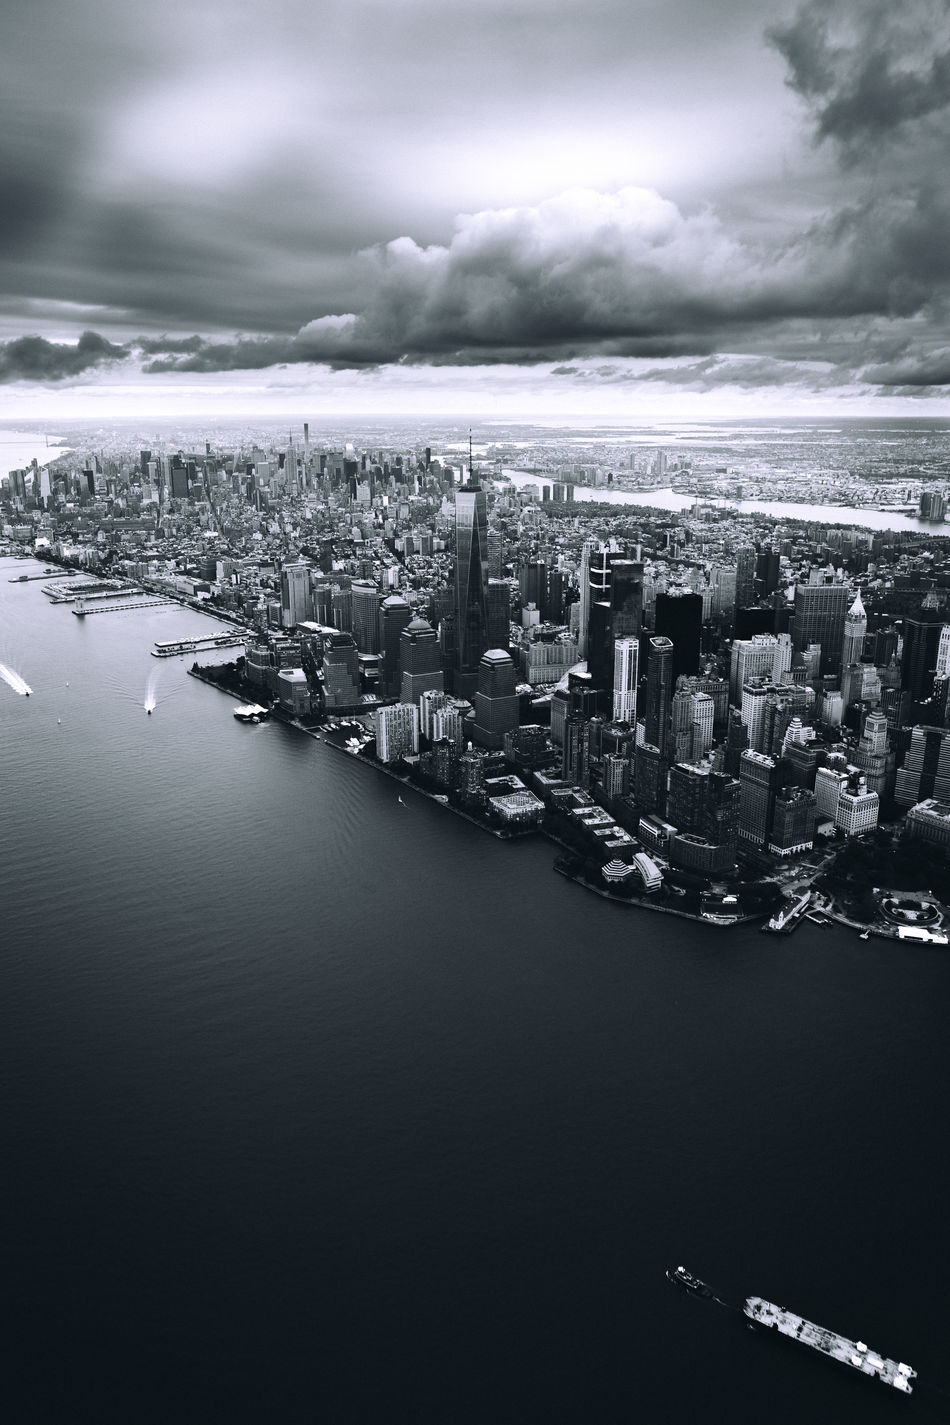 Manhattan Aerial View Architecture Black And White Blackandwhite Building Exterior Check This Out City City City Life Cityscape Cloud Downtown District Exploring EyeEm EyeEm Best Shots Modern Monochrome New York New York City Sky Skyscraper Taking Photos Urban Skyline Water Waterfront